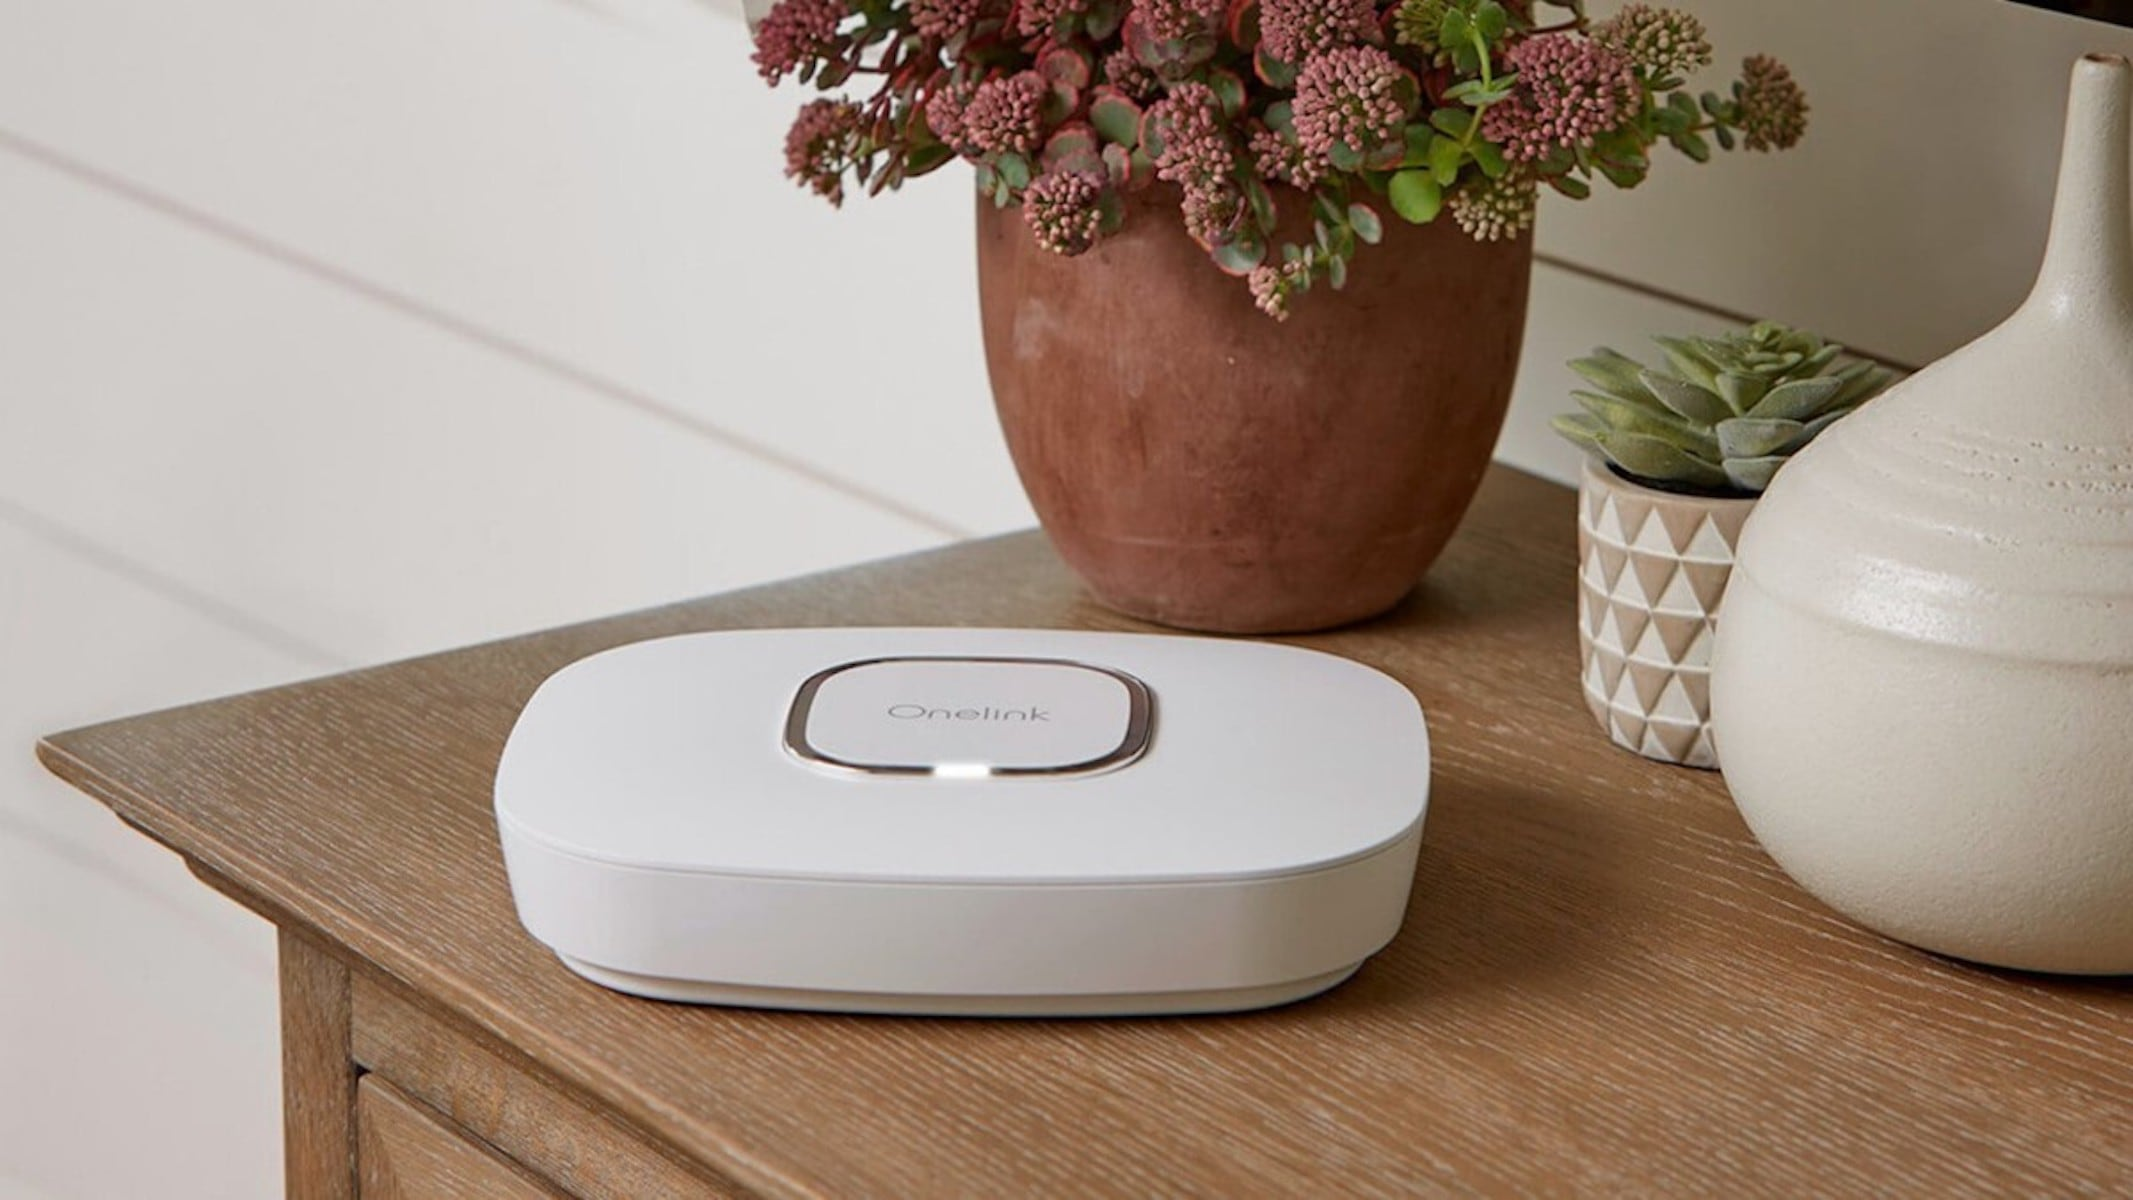 First Alert Onelink Smoke and CO Detector